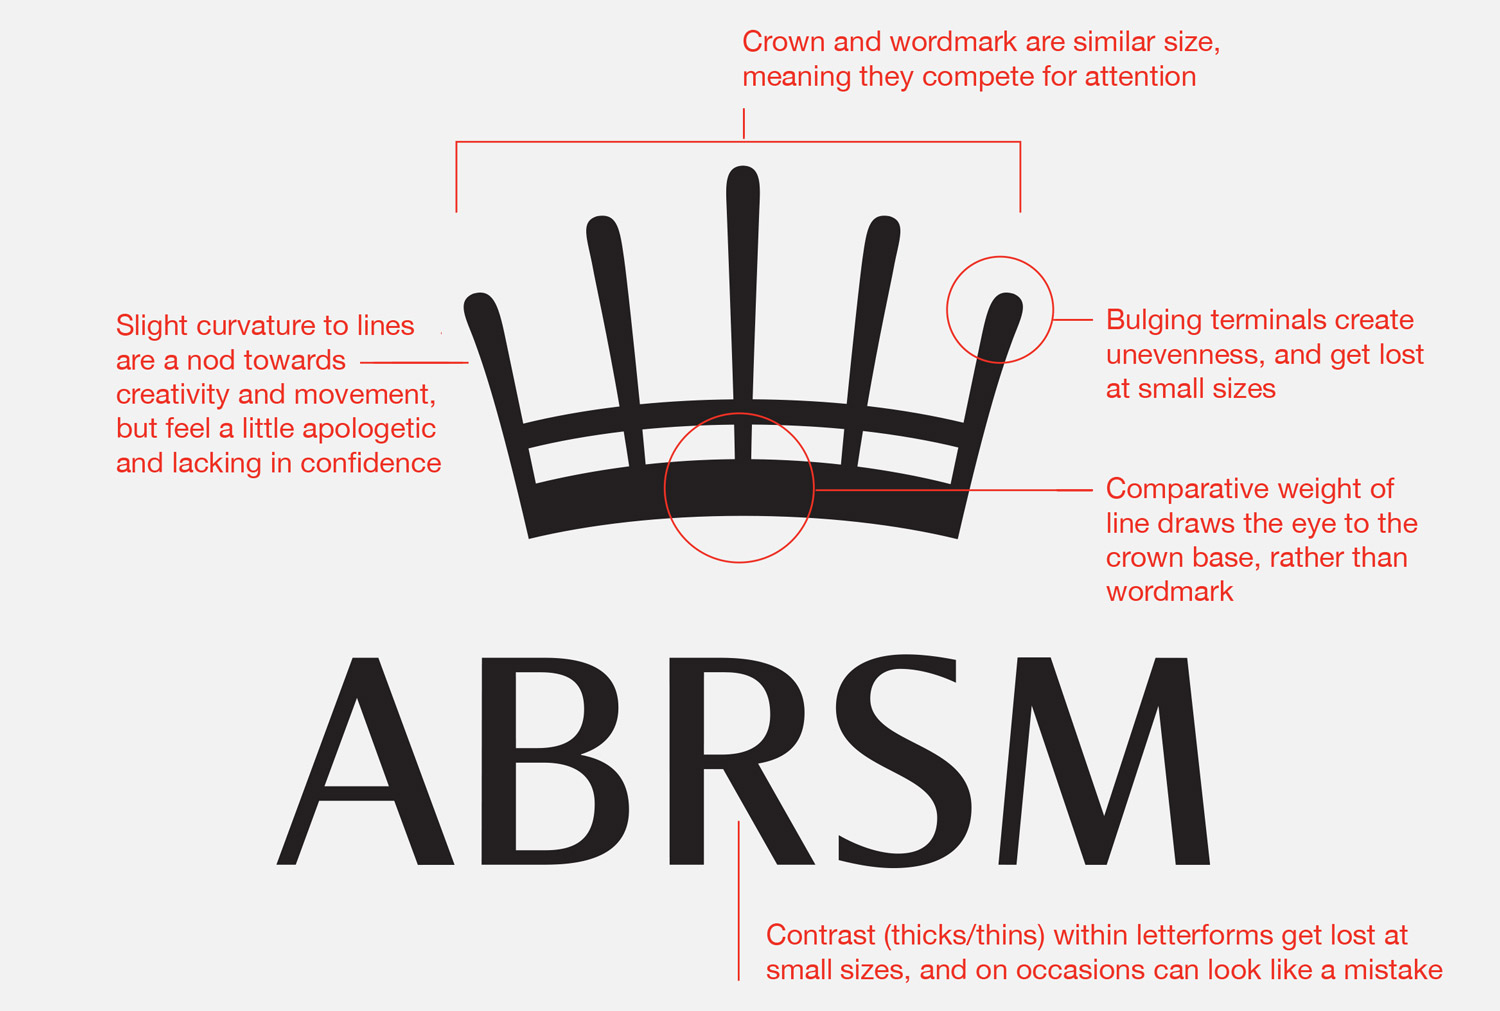 abrsm_original_logo_mark-up